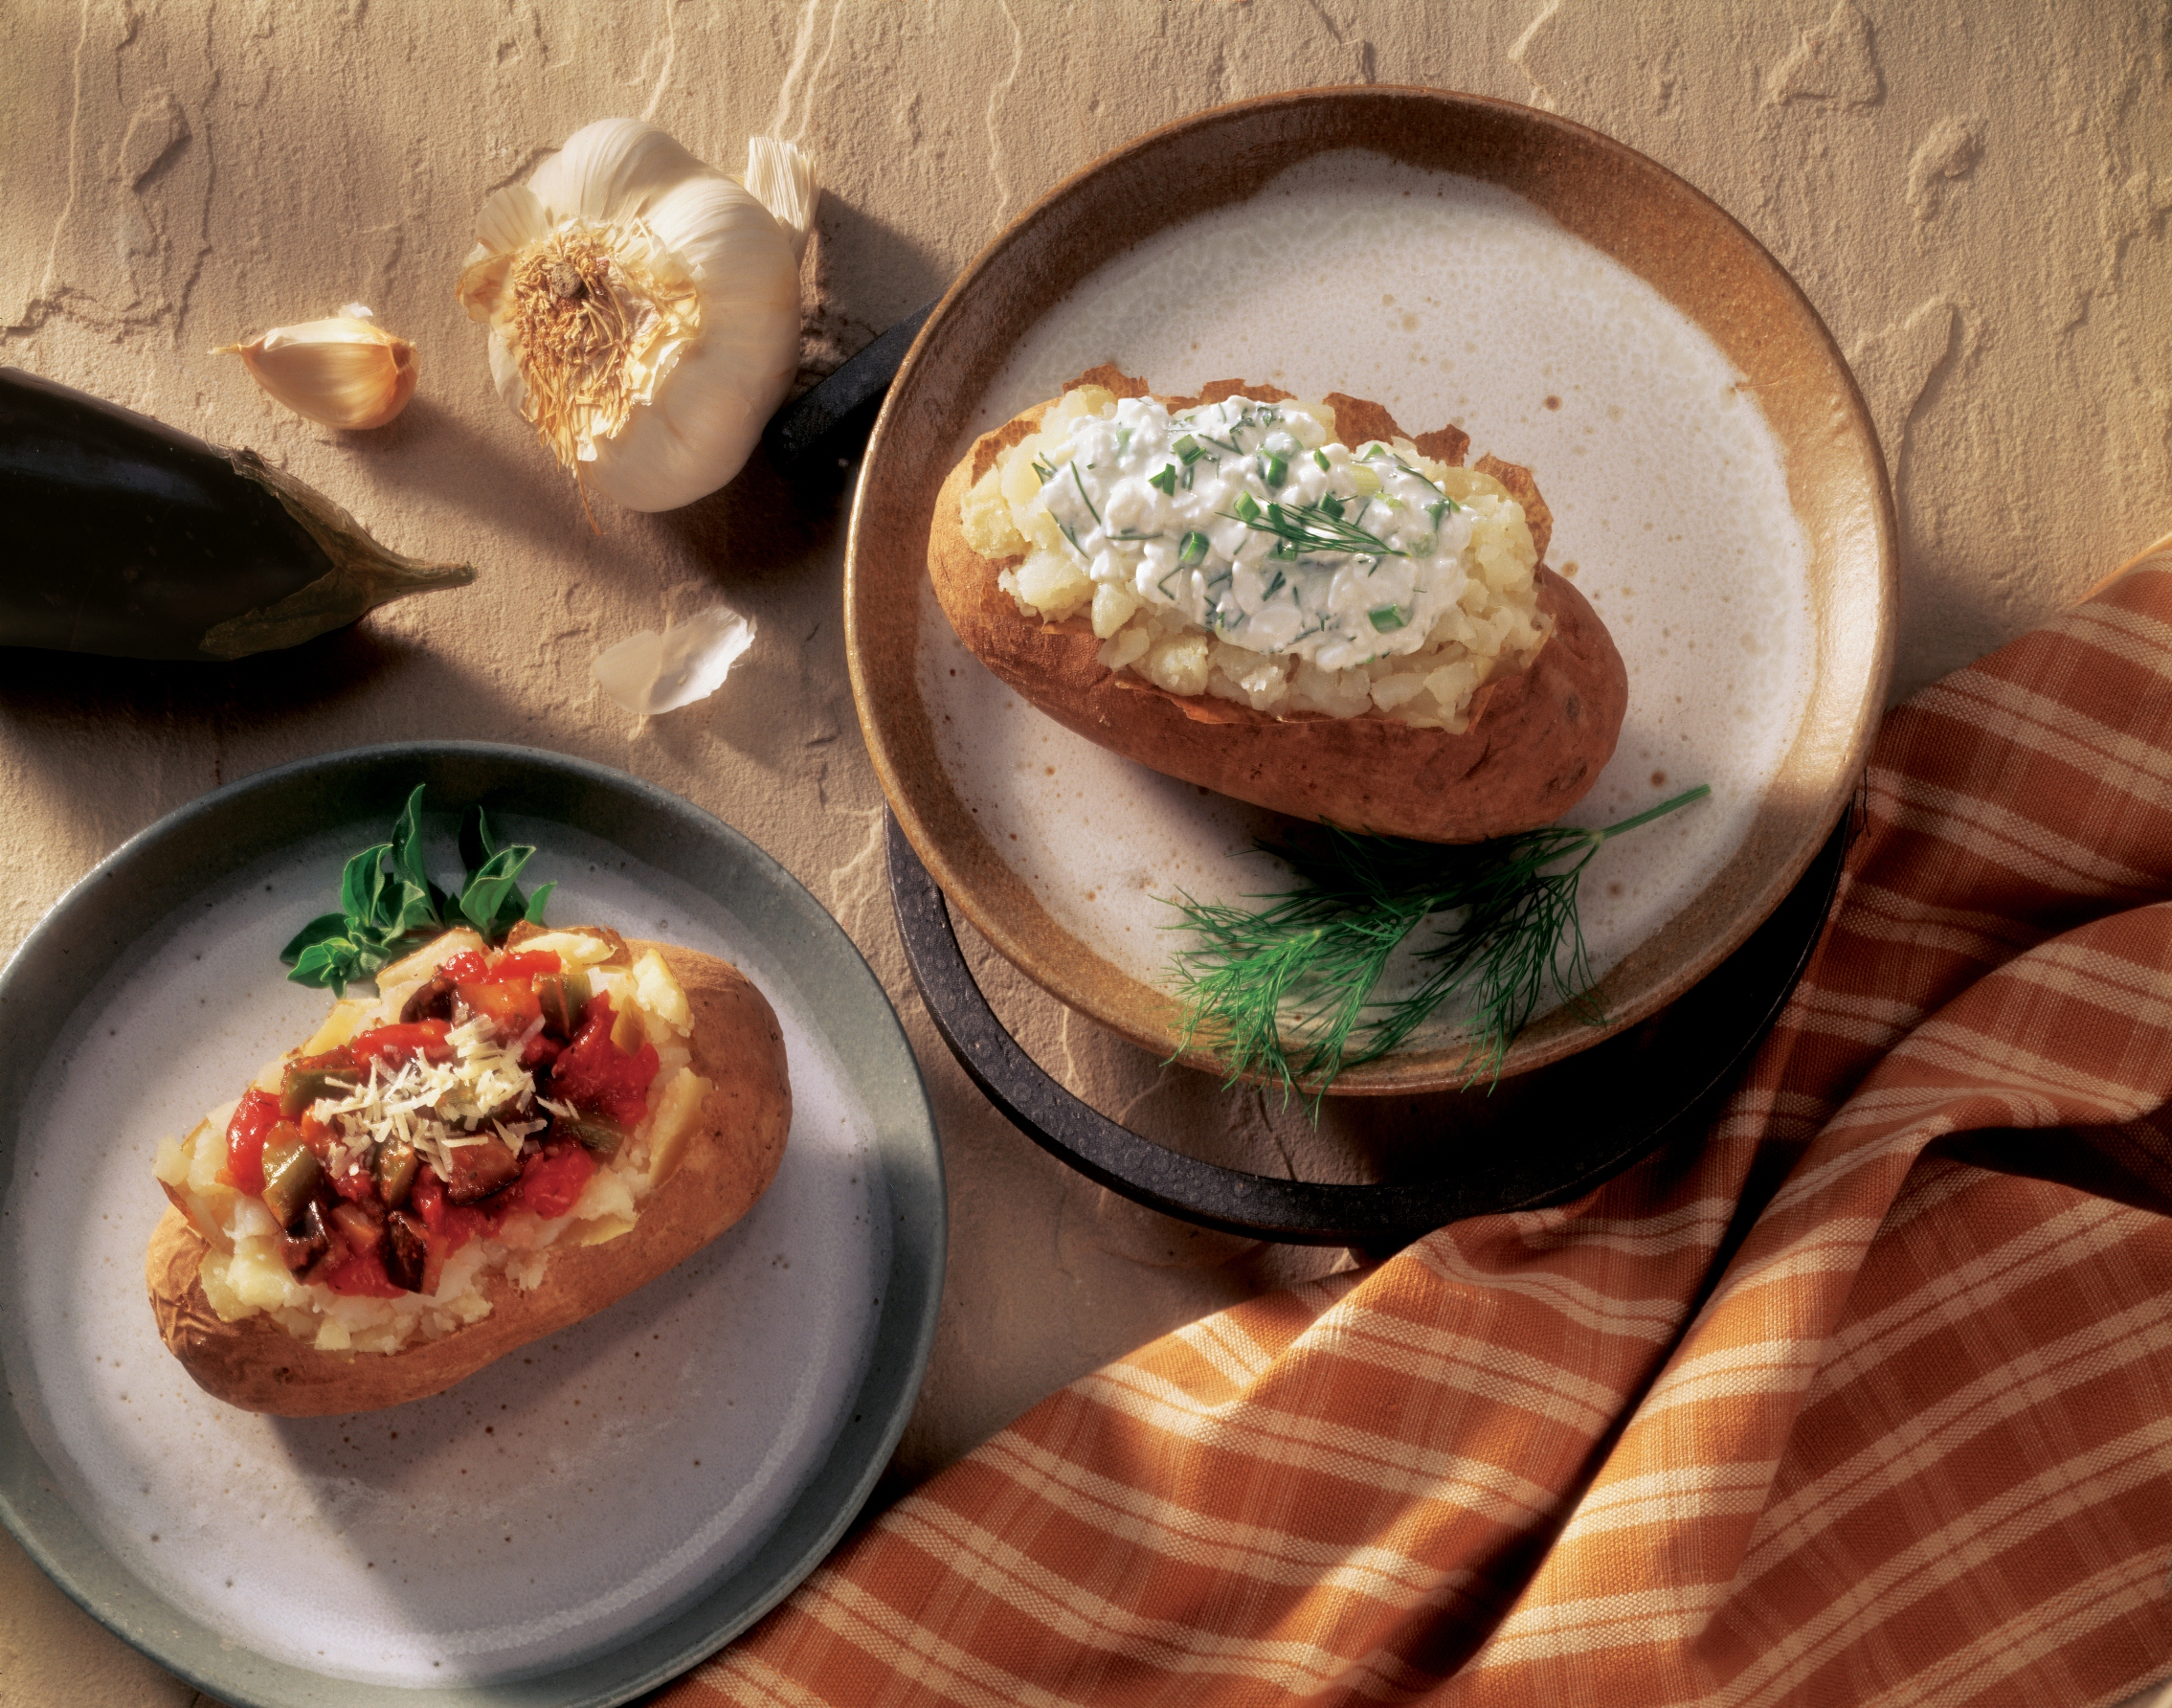 Surprising Baked Idaho Potato With Herbed Cottage Cheese And Baked Idaho Potato With Eggplant Parmigiana Download Free Architecture Designs Scobabritishbridgeorg